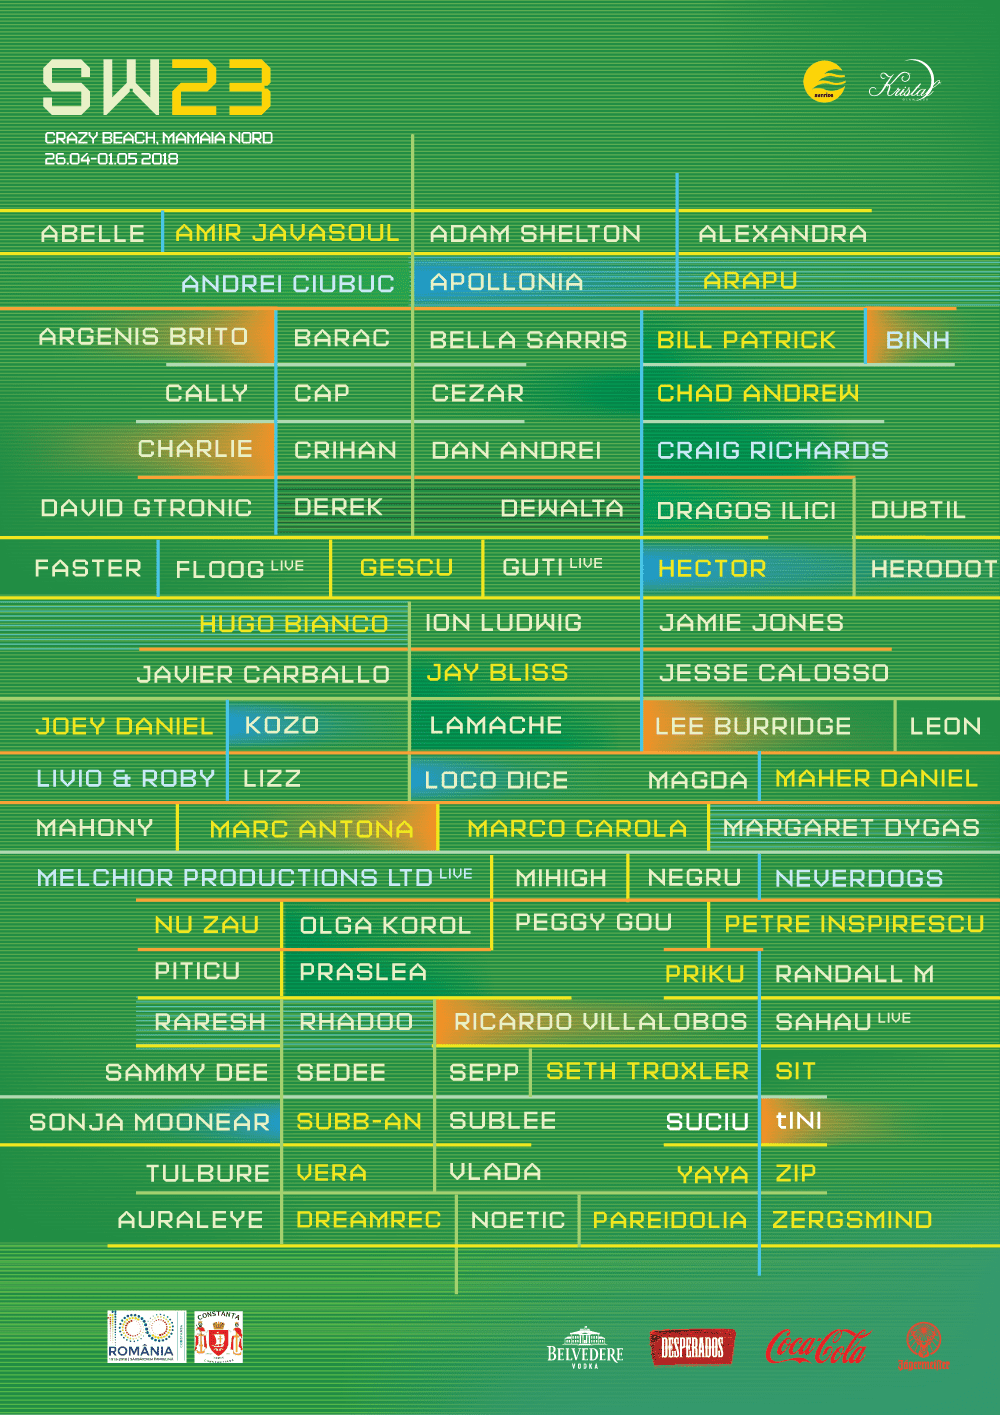 Sunwaves Festival: SW23 Complete Line-up and time table